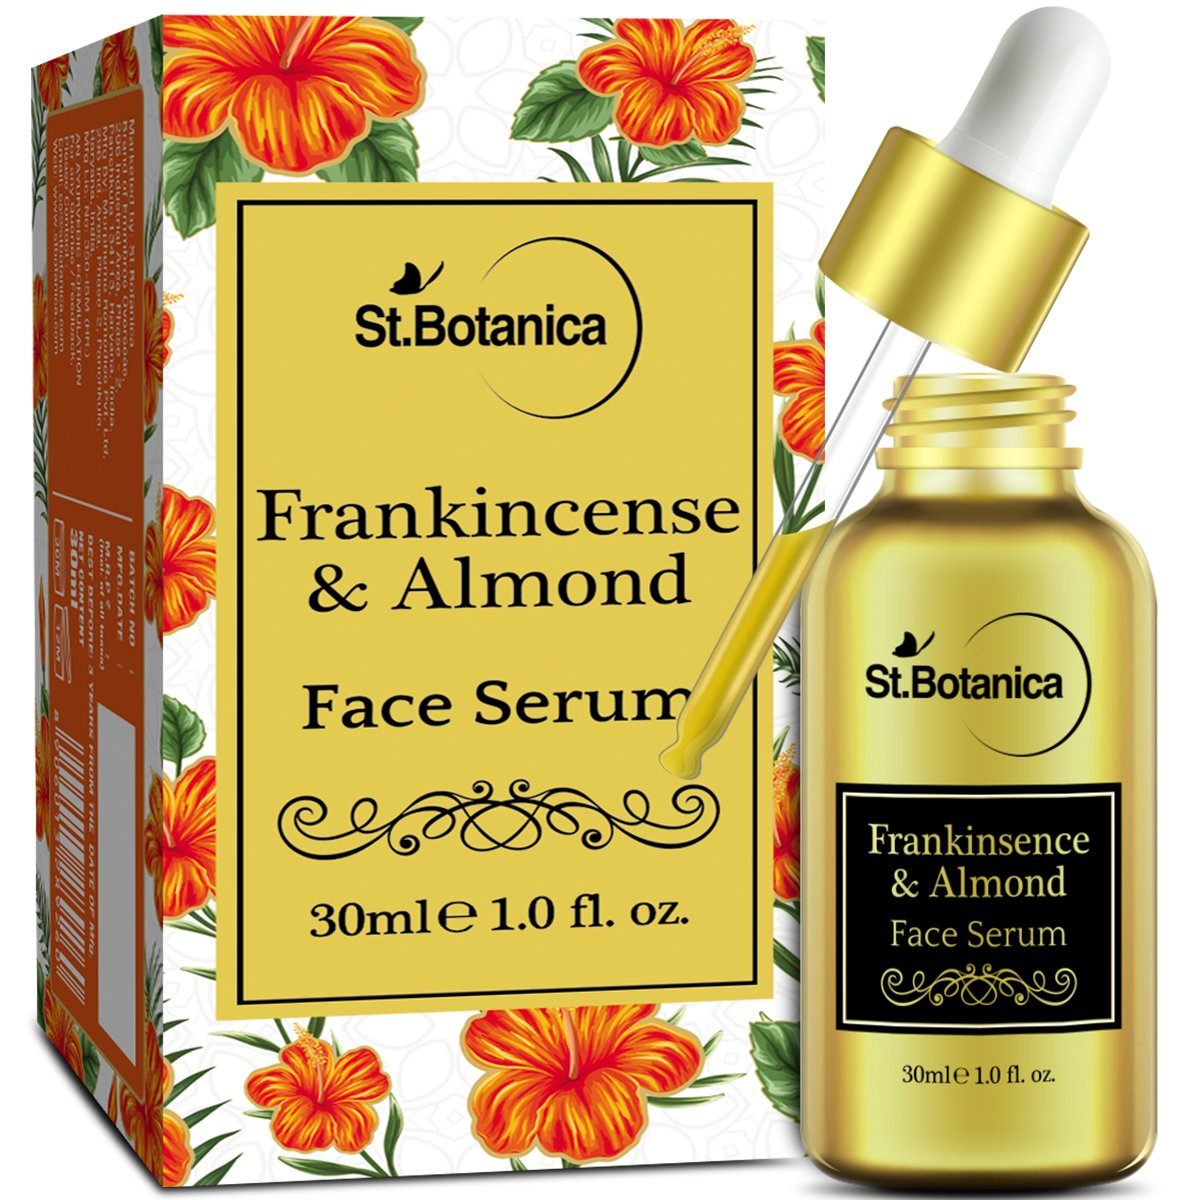 StBotanica Frankincense & Almond Face Serum - 30 ml - Anti Aging, Acne or Mature Skin product image